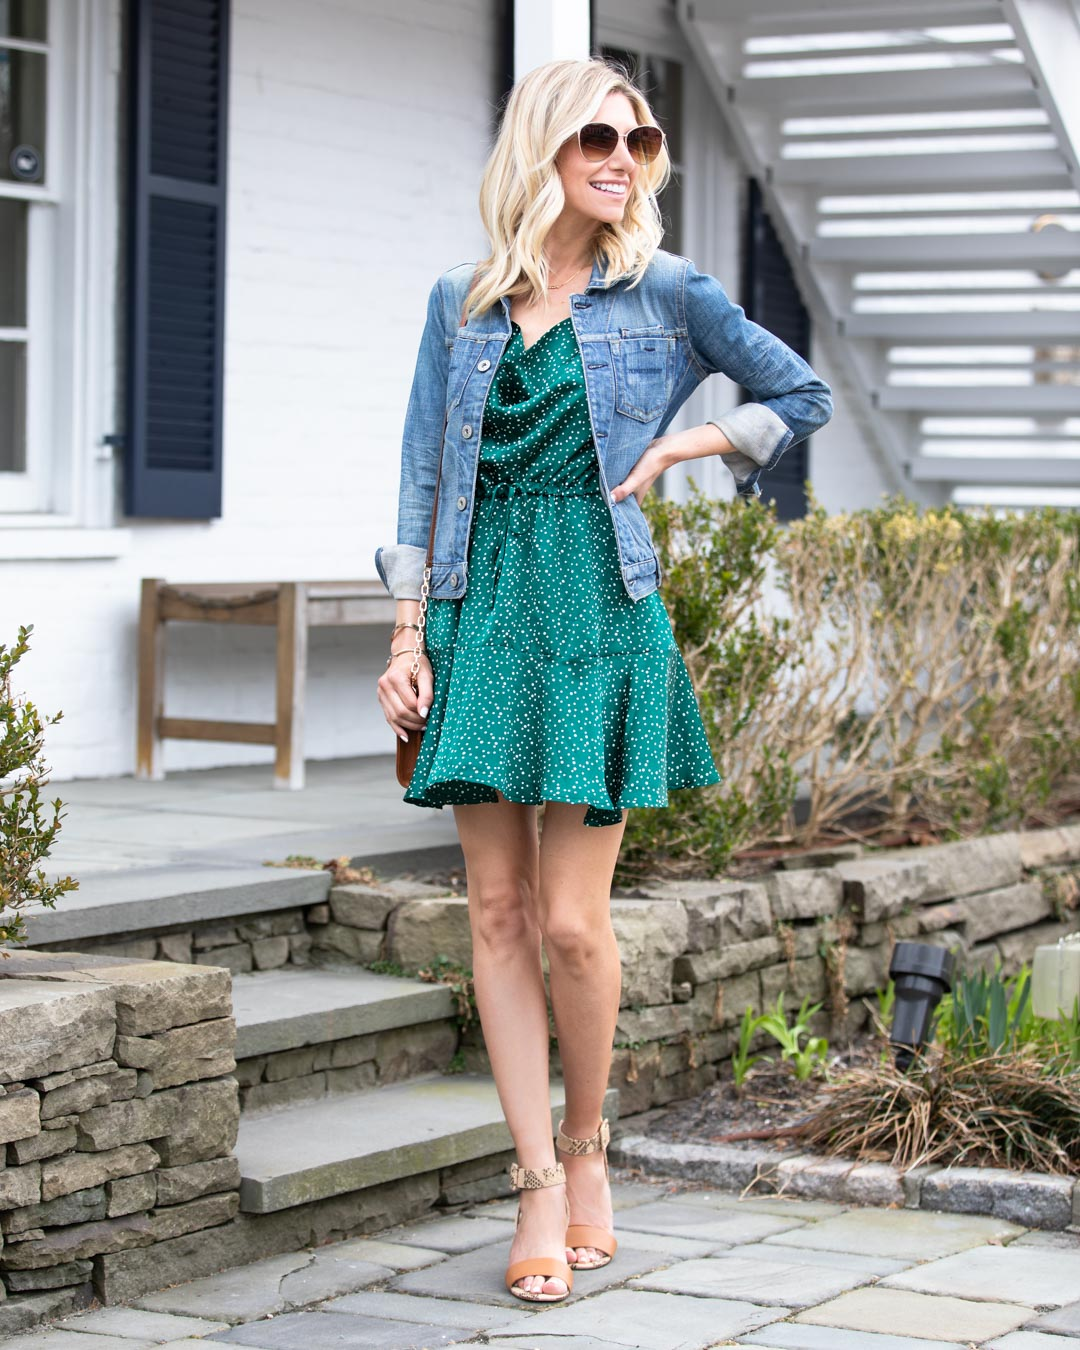 Green Polka Dot Dress